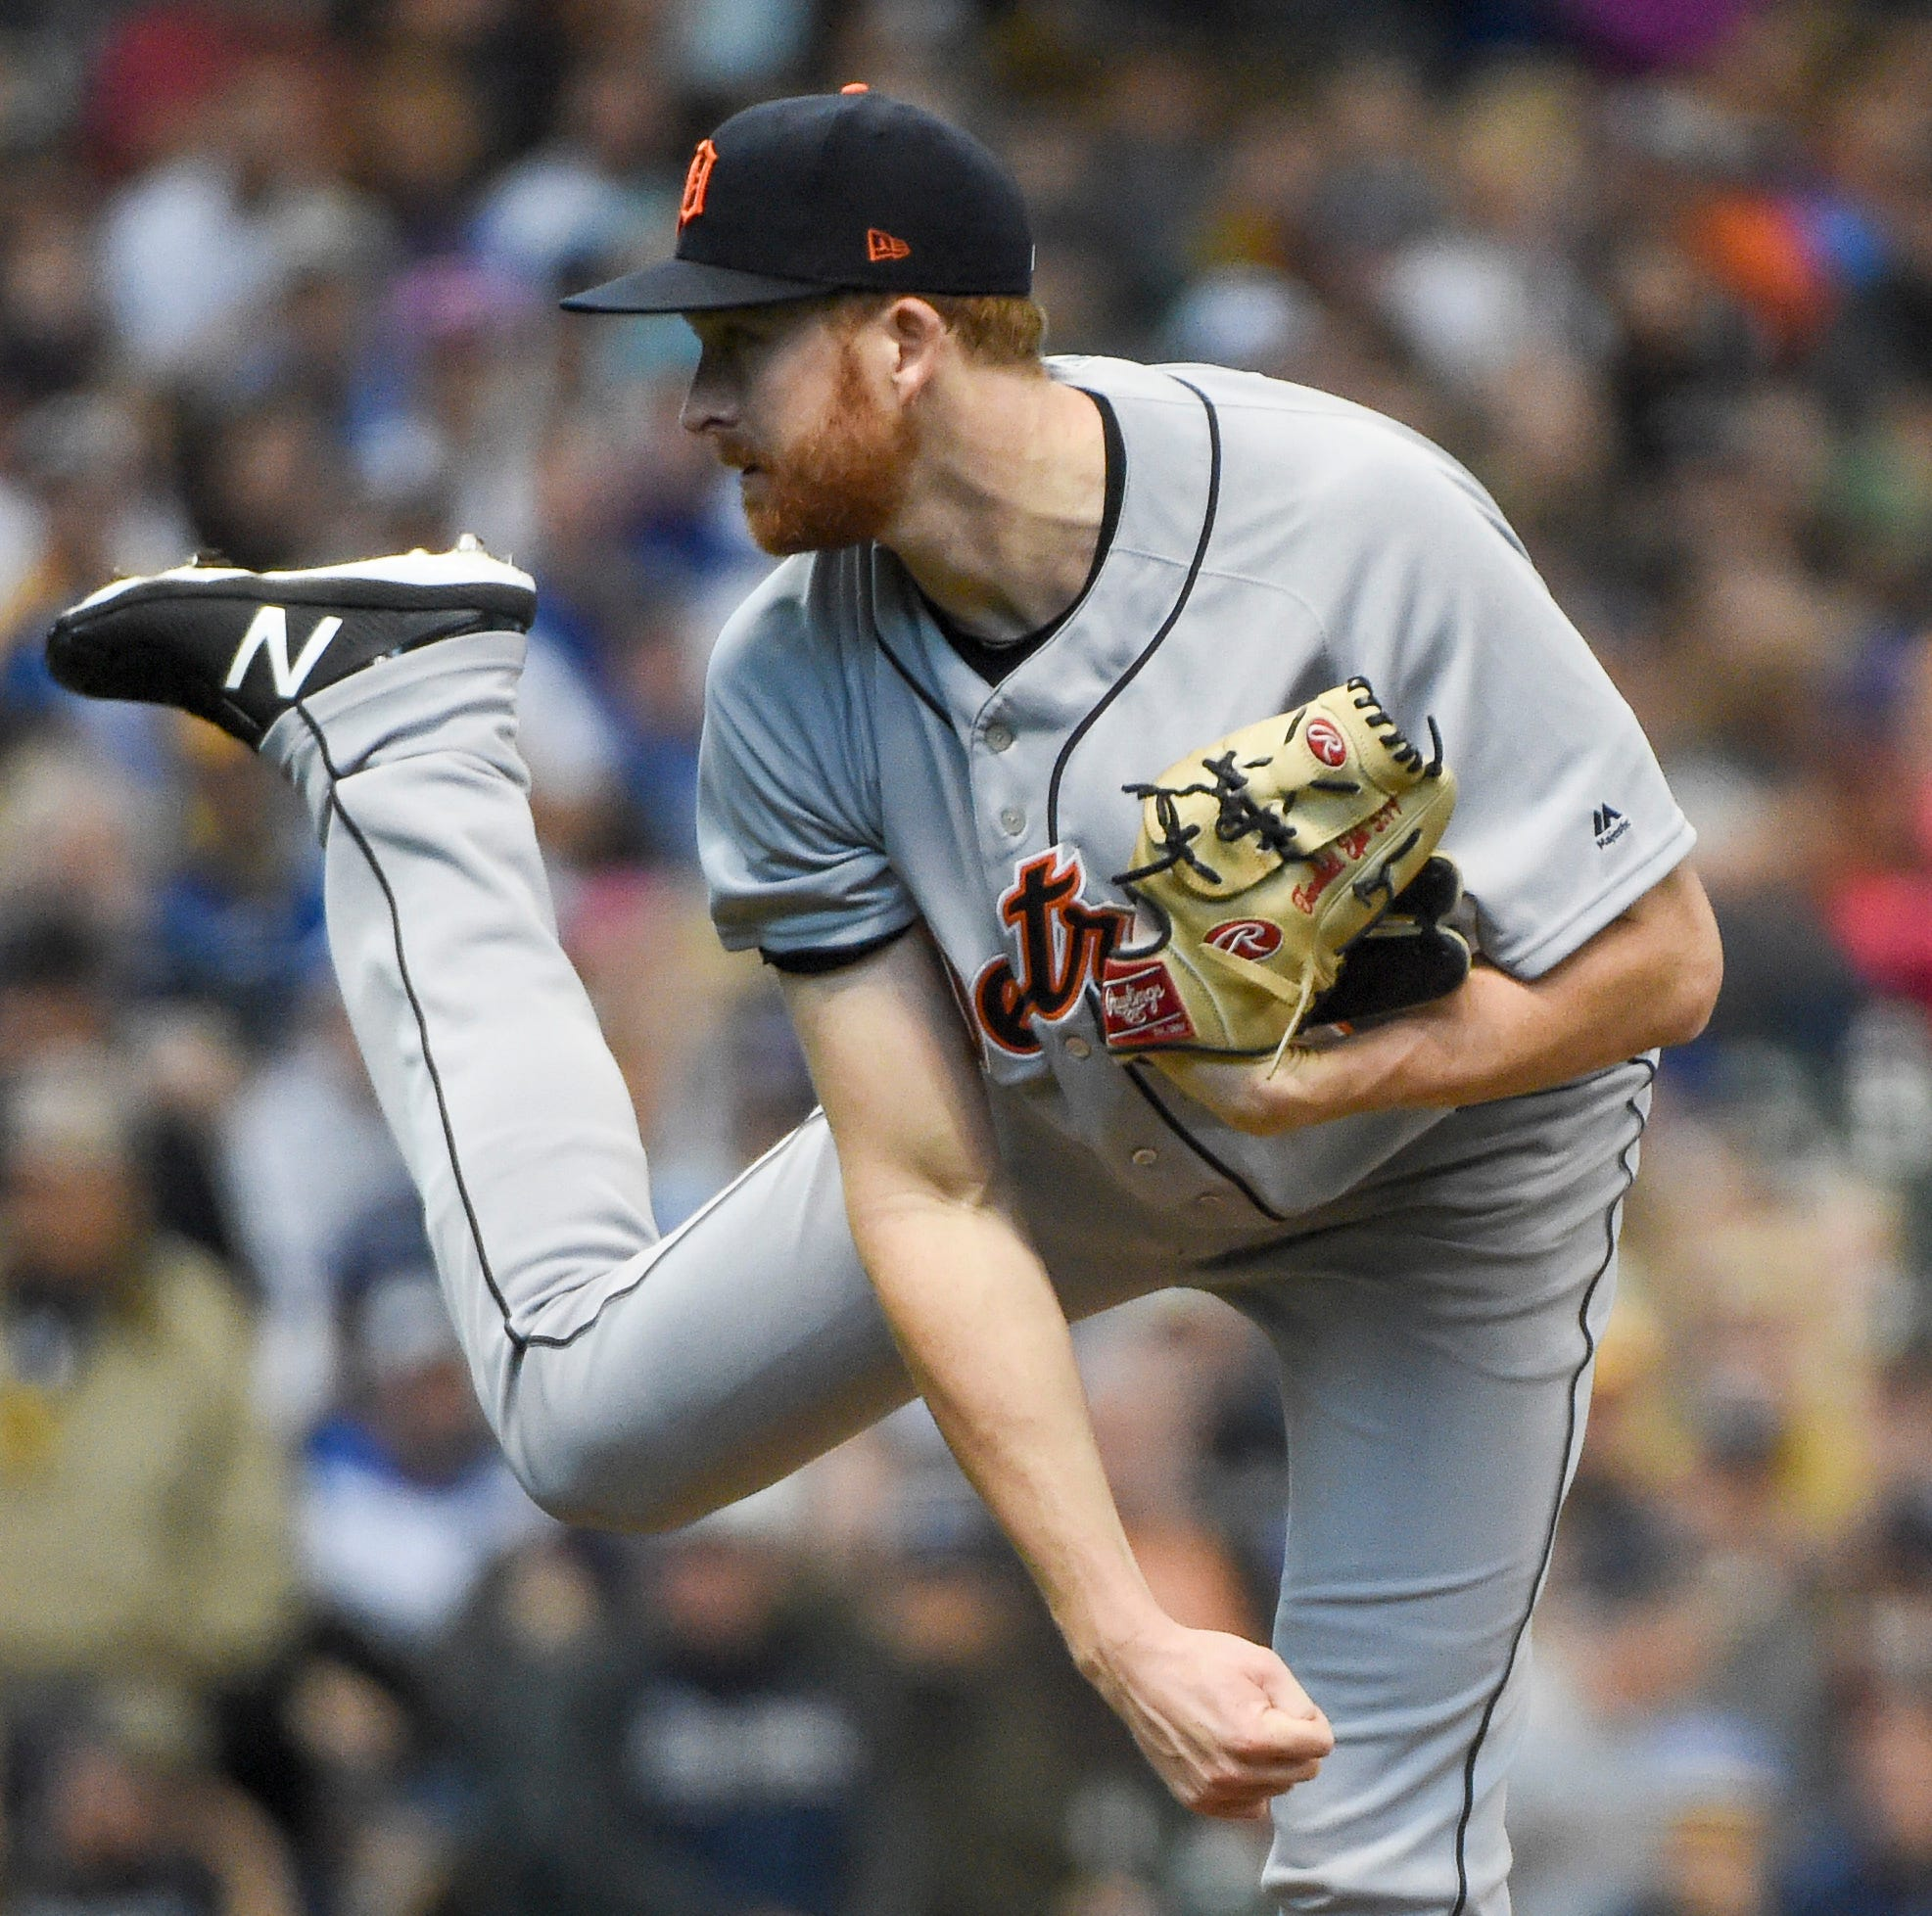 Detroit Tigers shut out in season finale, end season with 98 losses